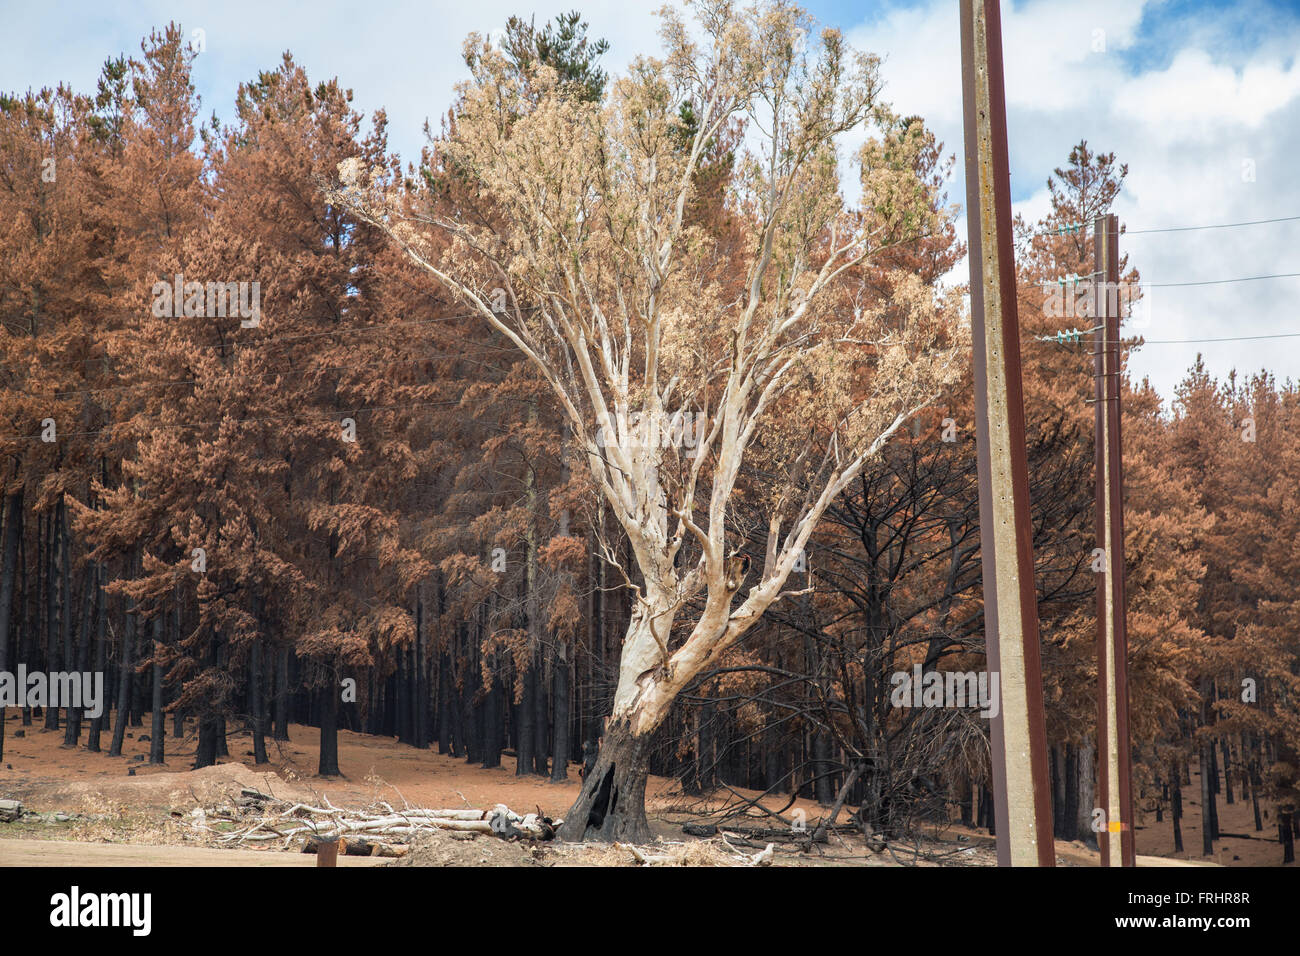 conifers and single eucalyptus tree after forest fire, electrical poles and wires - Stock Image